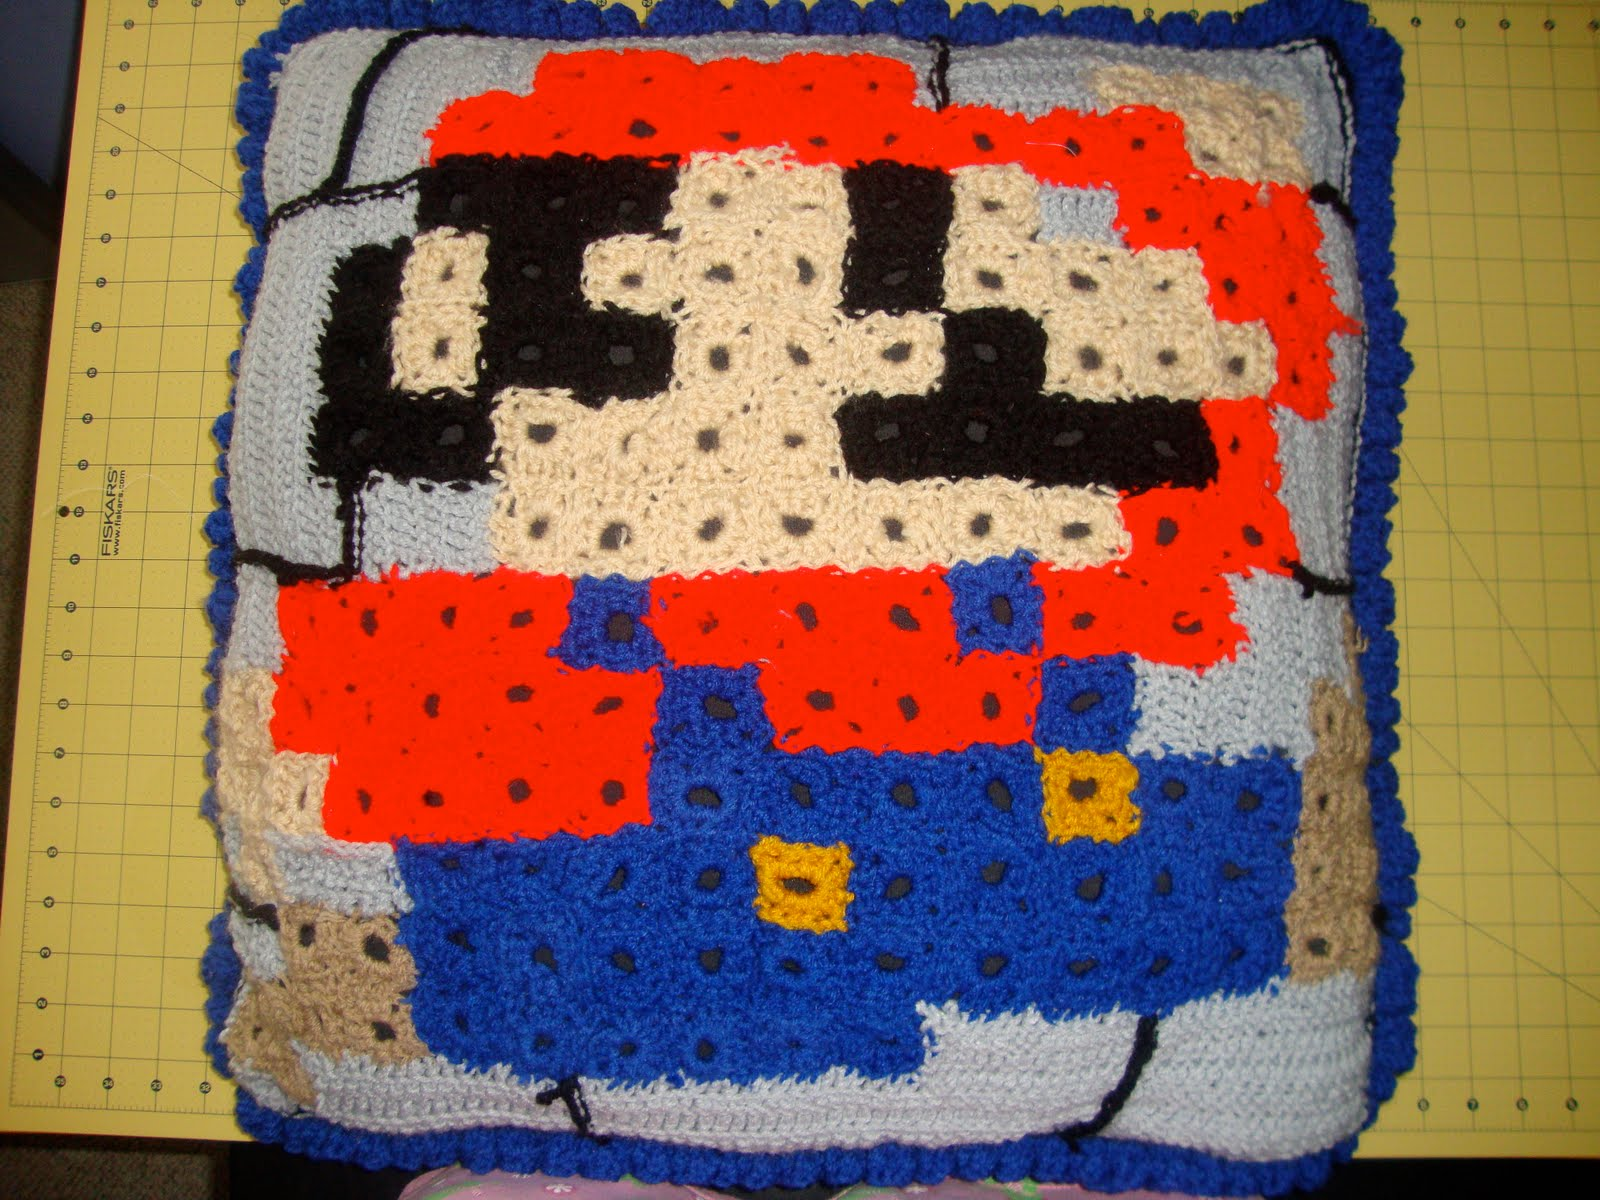 Bethany Sew-and-Sew: Super Mario Crocheted Pillow Tutorial